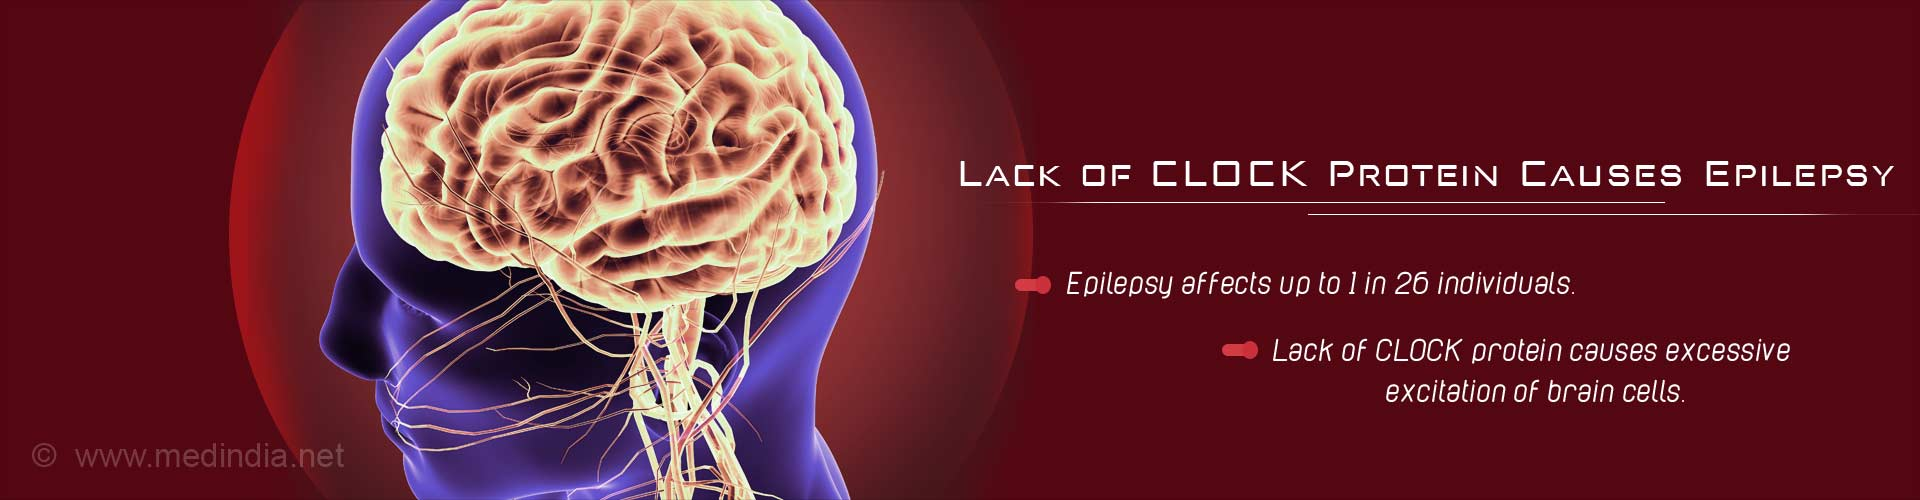 Lack of clock protein cause epilepsy